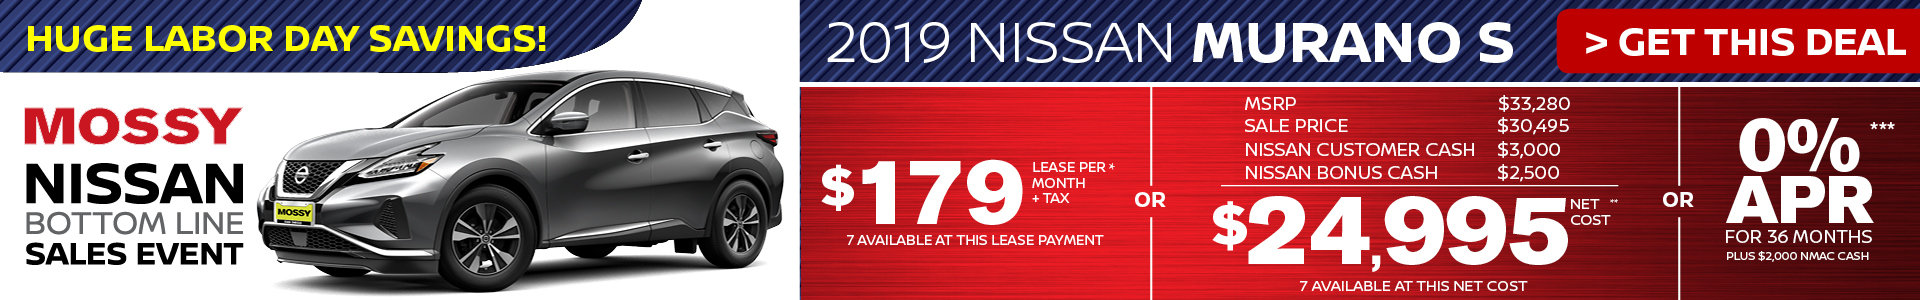 Mossy Nissan - Nissan Murano $24,995 Purchase